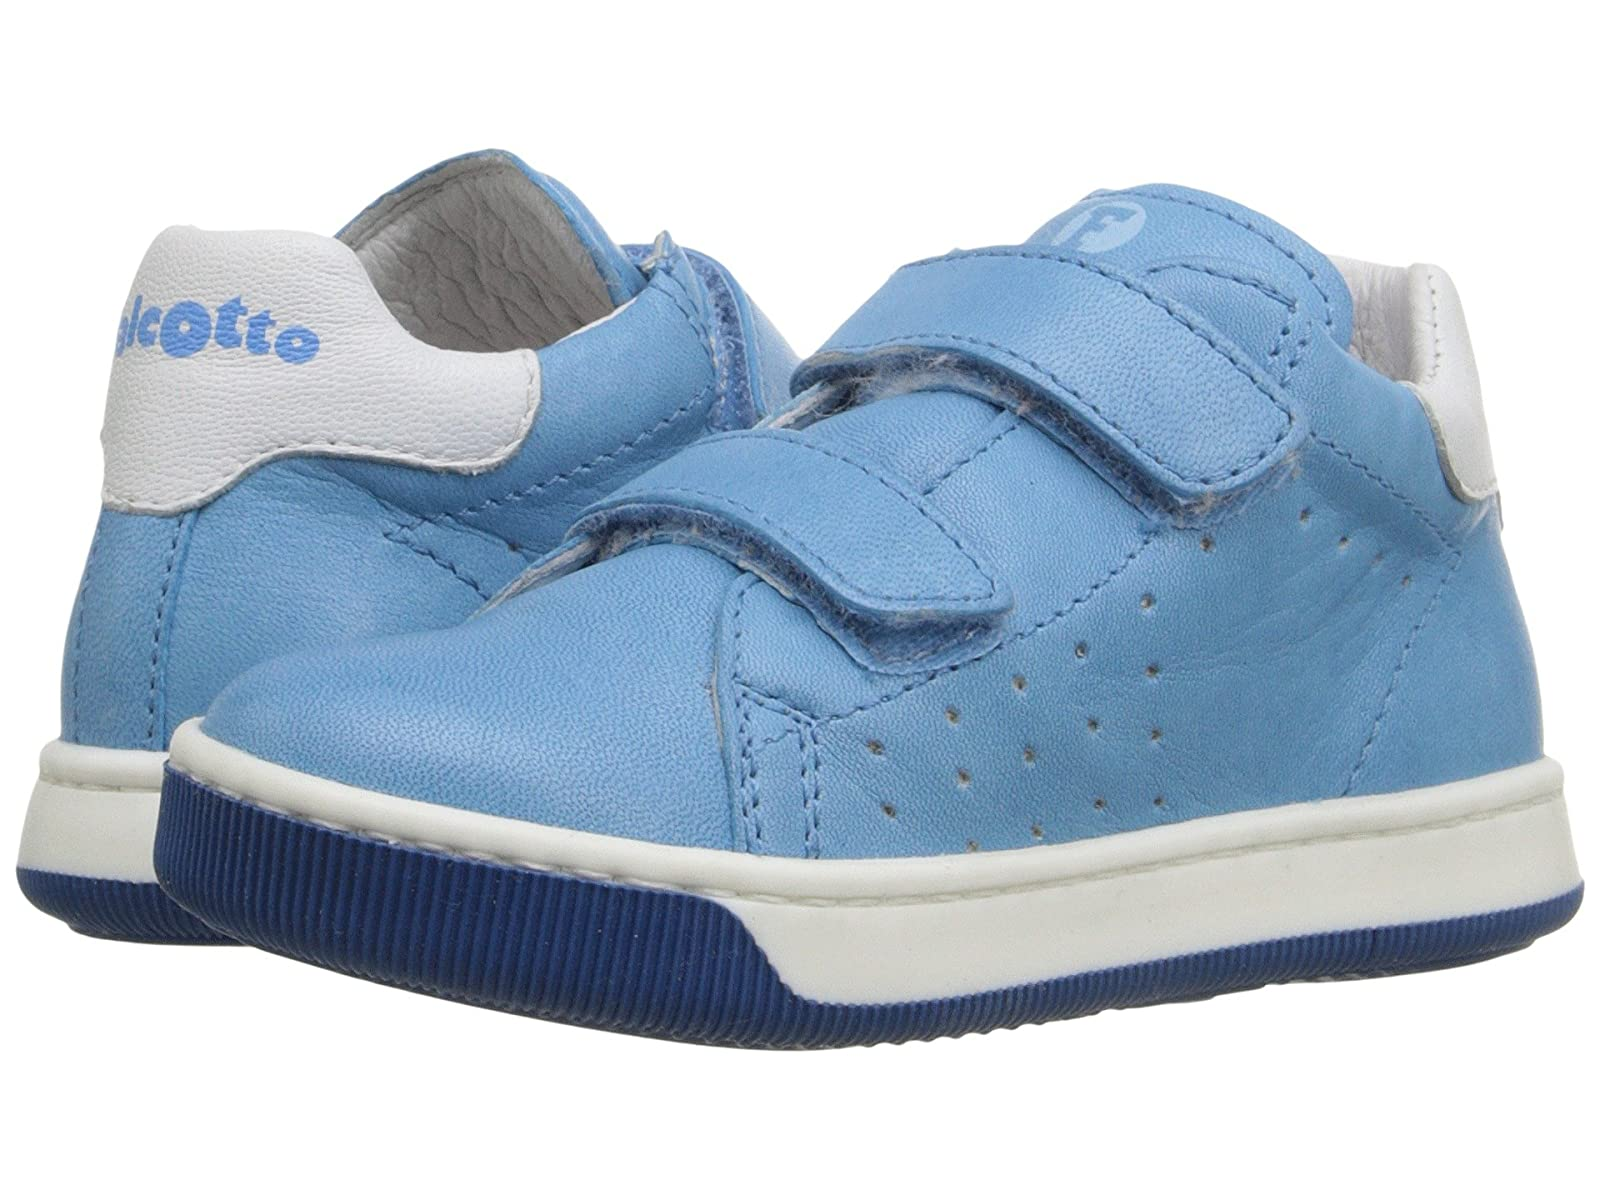 Naturino Falcotto Smith VL SS16 (Toddler)Cheap and distinctive eye-catching shoes